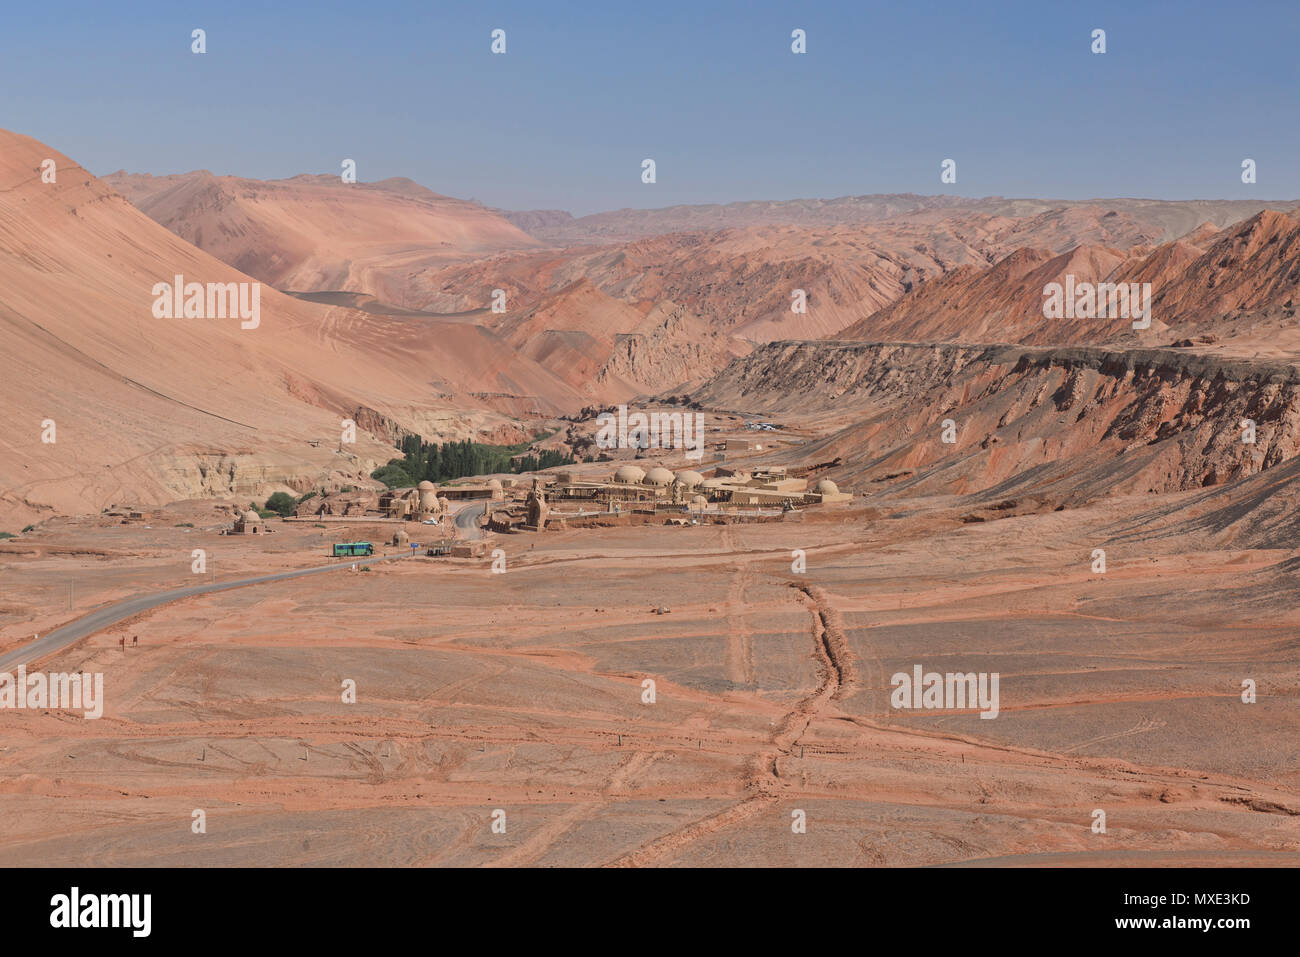 Spectrum of colors in the Flaming Mountains, Turpan, Xinjiang, China - Stock Image